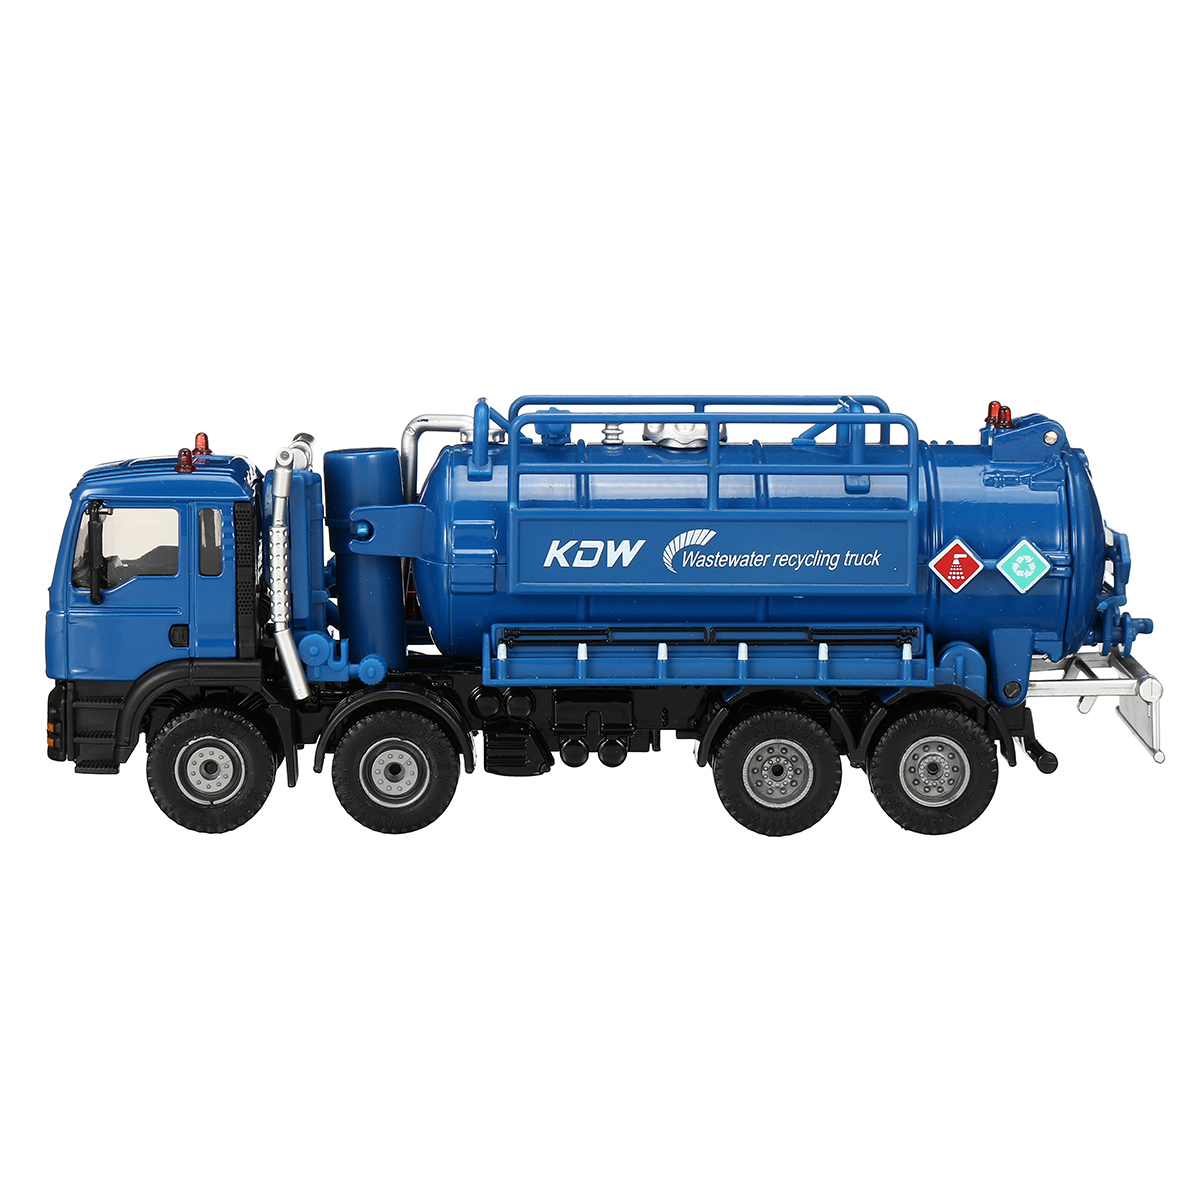 1:50 Scale Diecast Model Vacuum Sewage Waste Water Suction Truck Model Toy Shipping Model